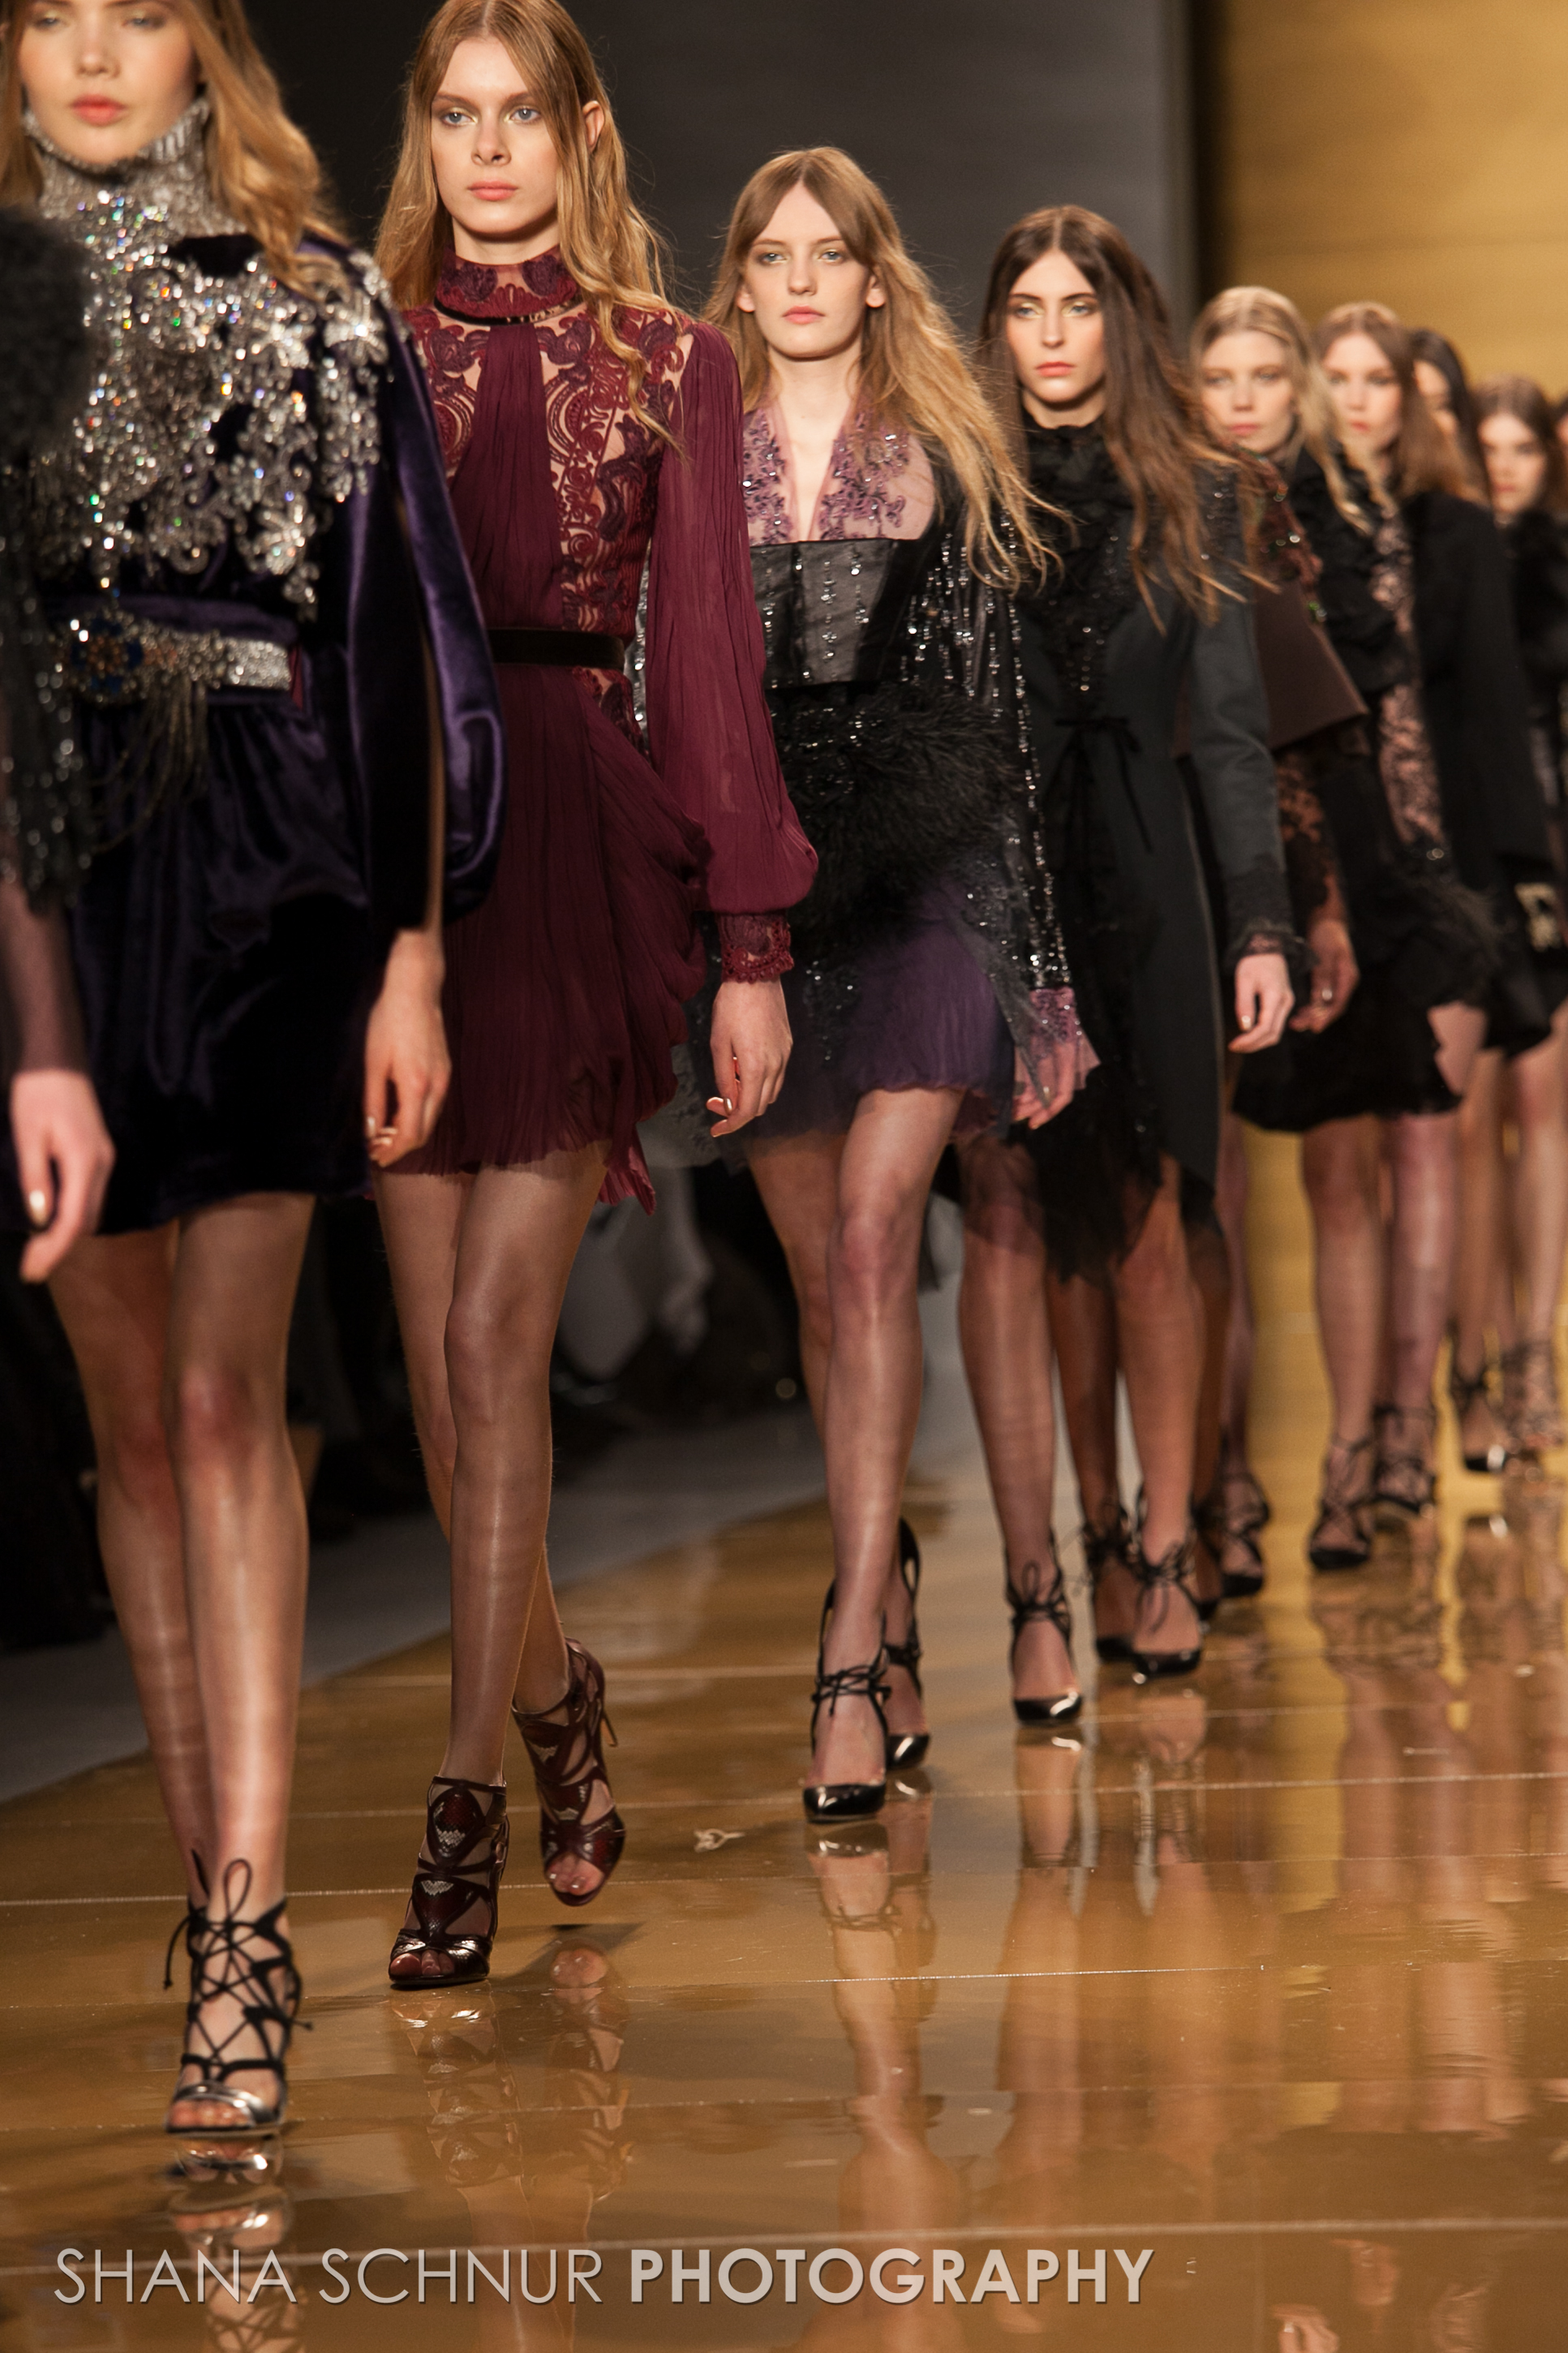 Reem-Acra-New-York-Fashion-Week-Fall-Winter-2015-Shana-Schnur-Photography-IMG_9959-081.jpg